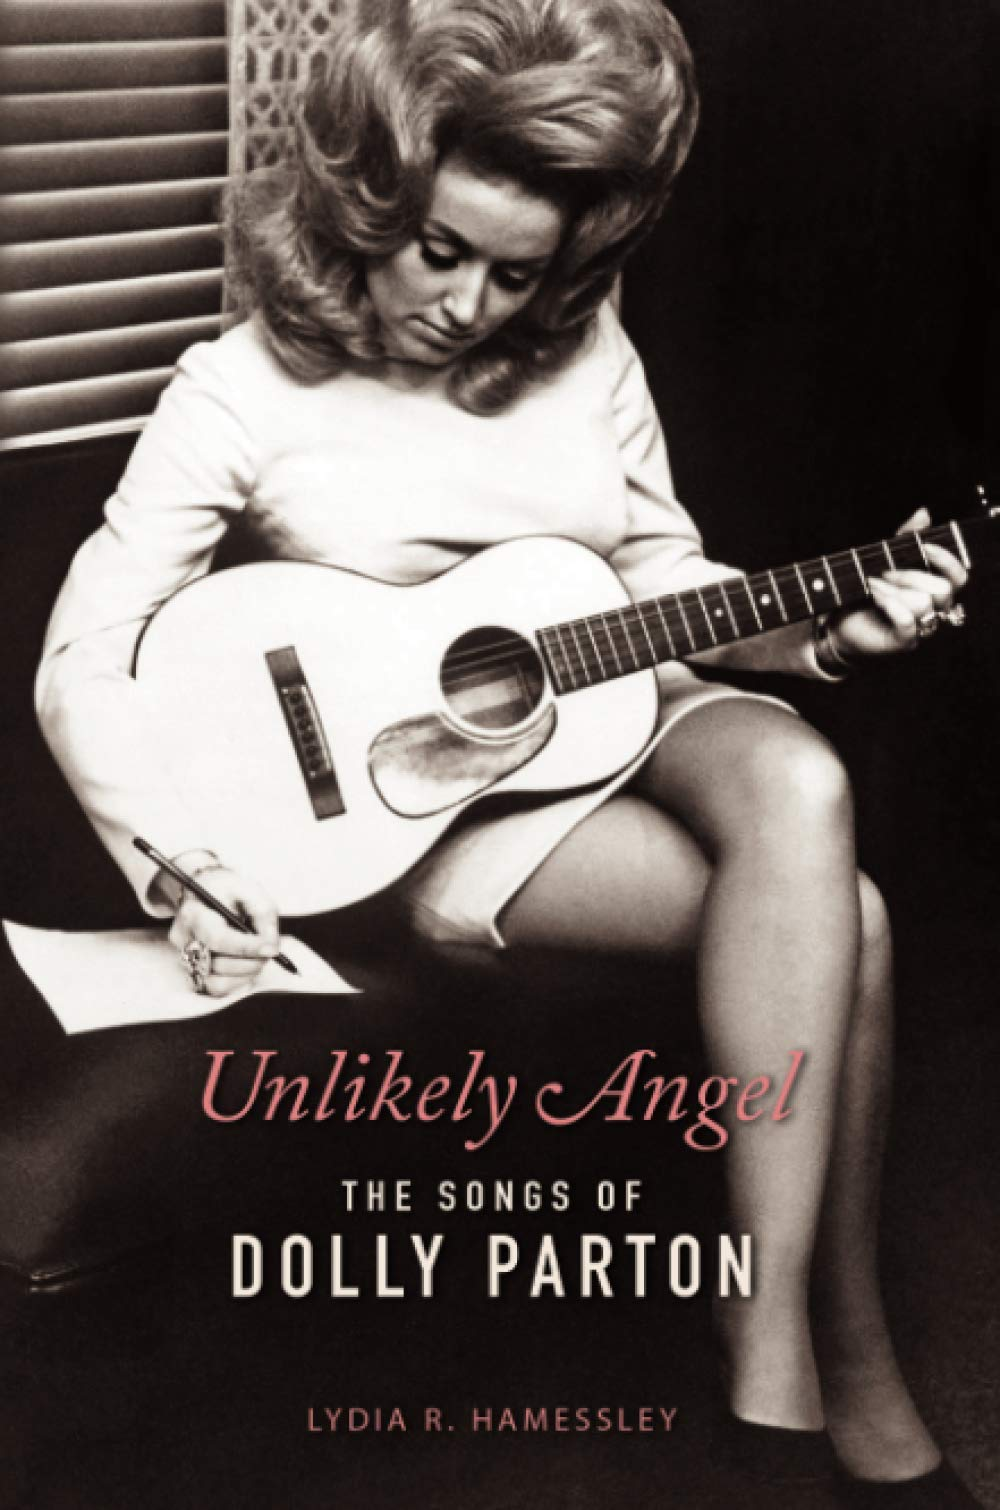 The cover of Unlikely Angel: The Songs of Dolly Parton